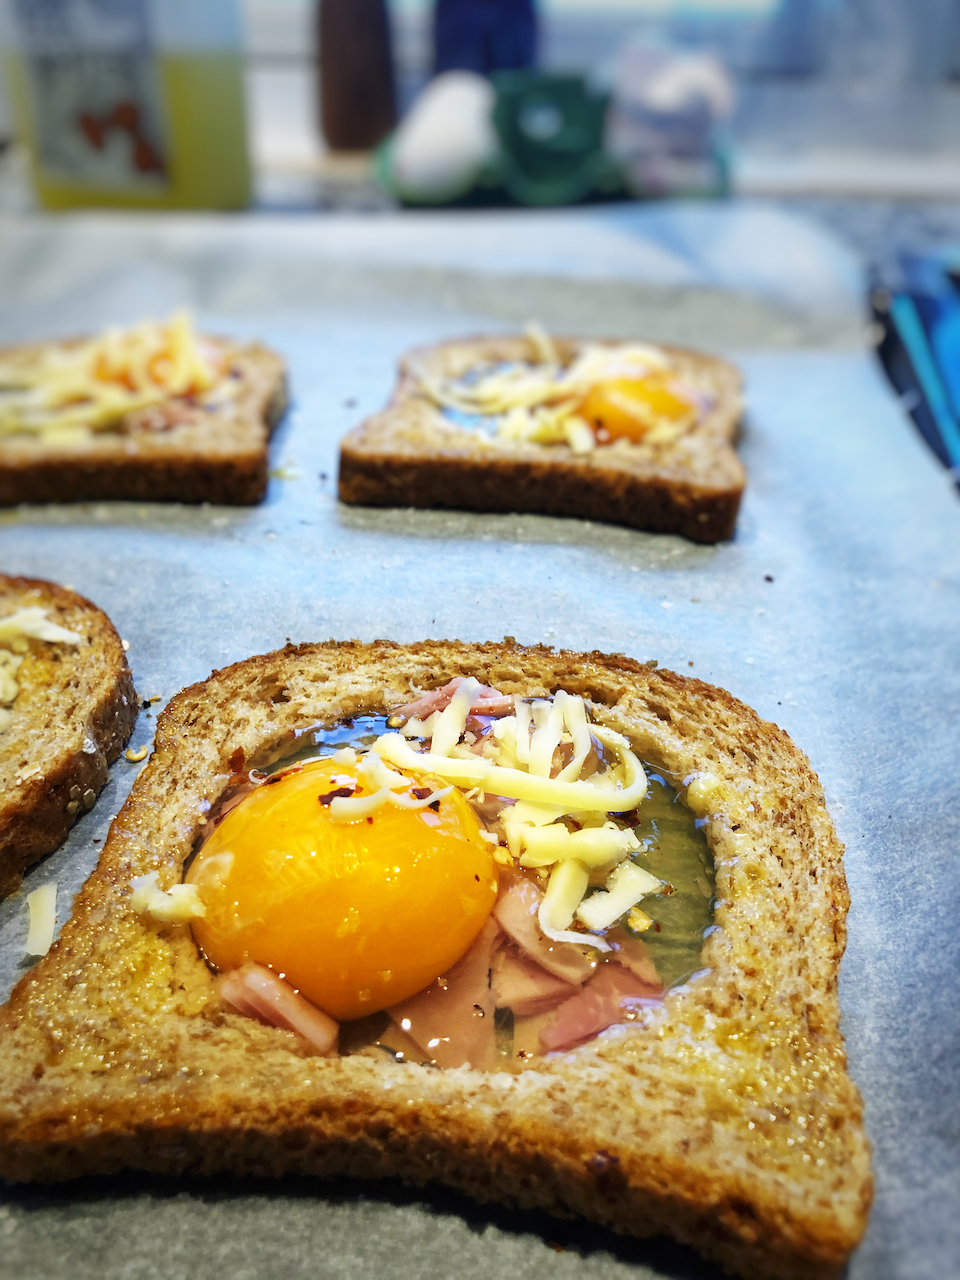 Crack one egg on top of the ham (in the hole in the bread)